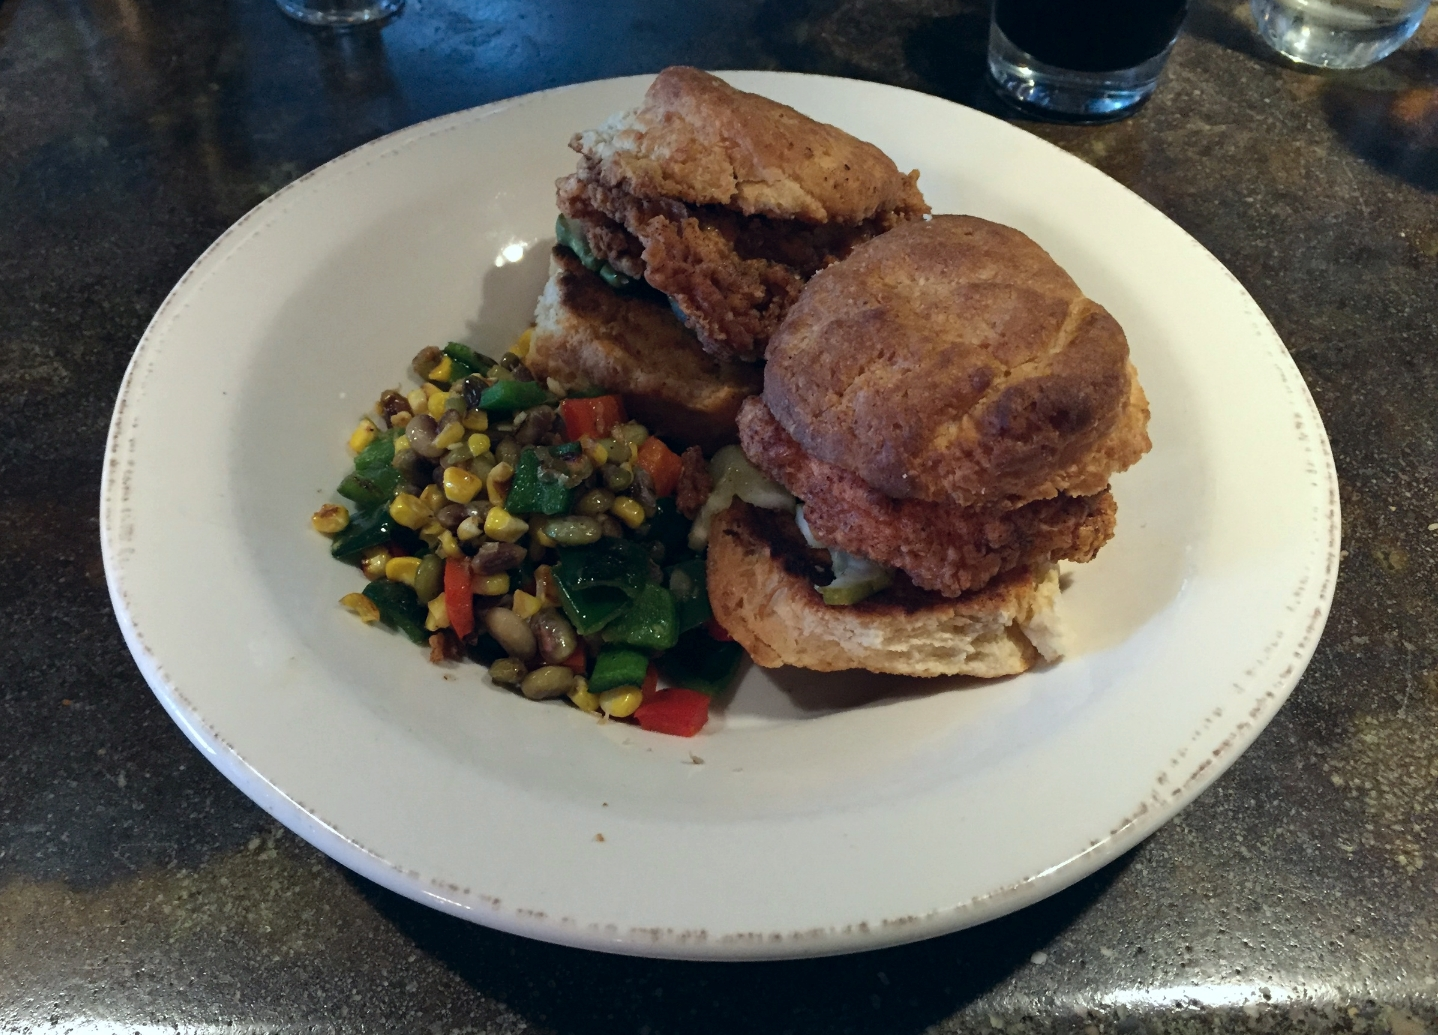 Chicken biscuit sandwich with a side of succotash